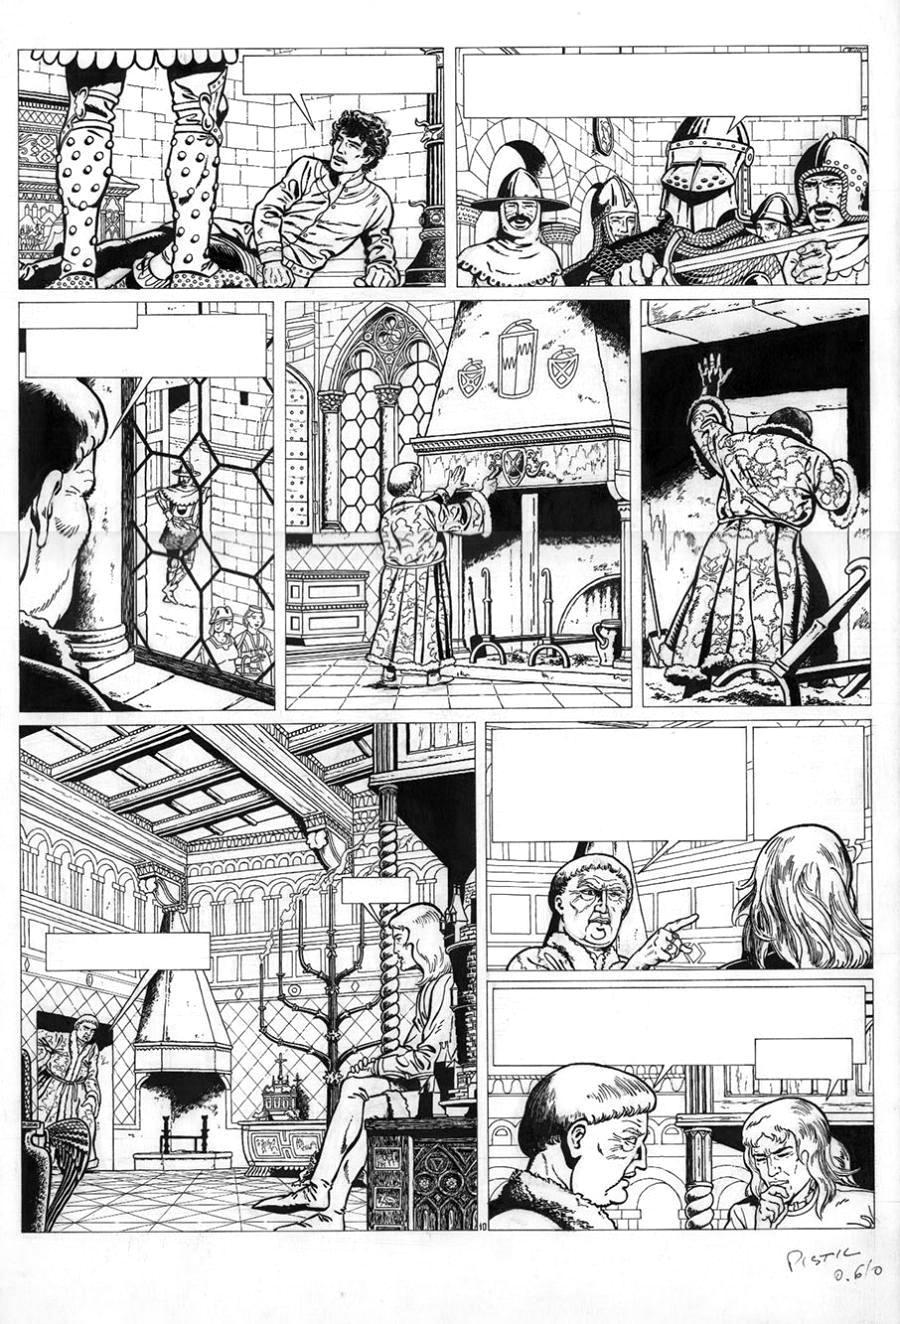 Original comic page 10 issue 1 from VSACO by CHAILLET